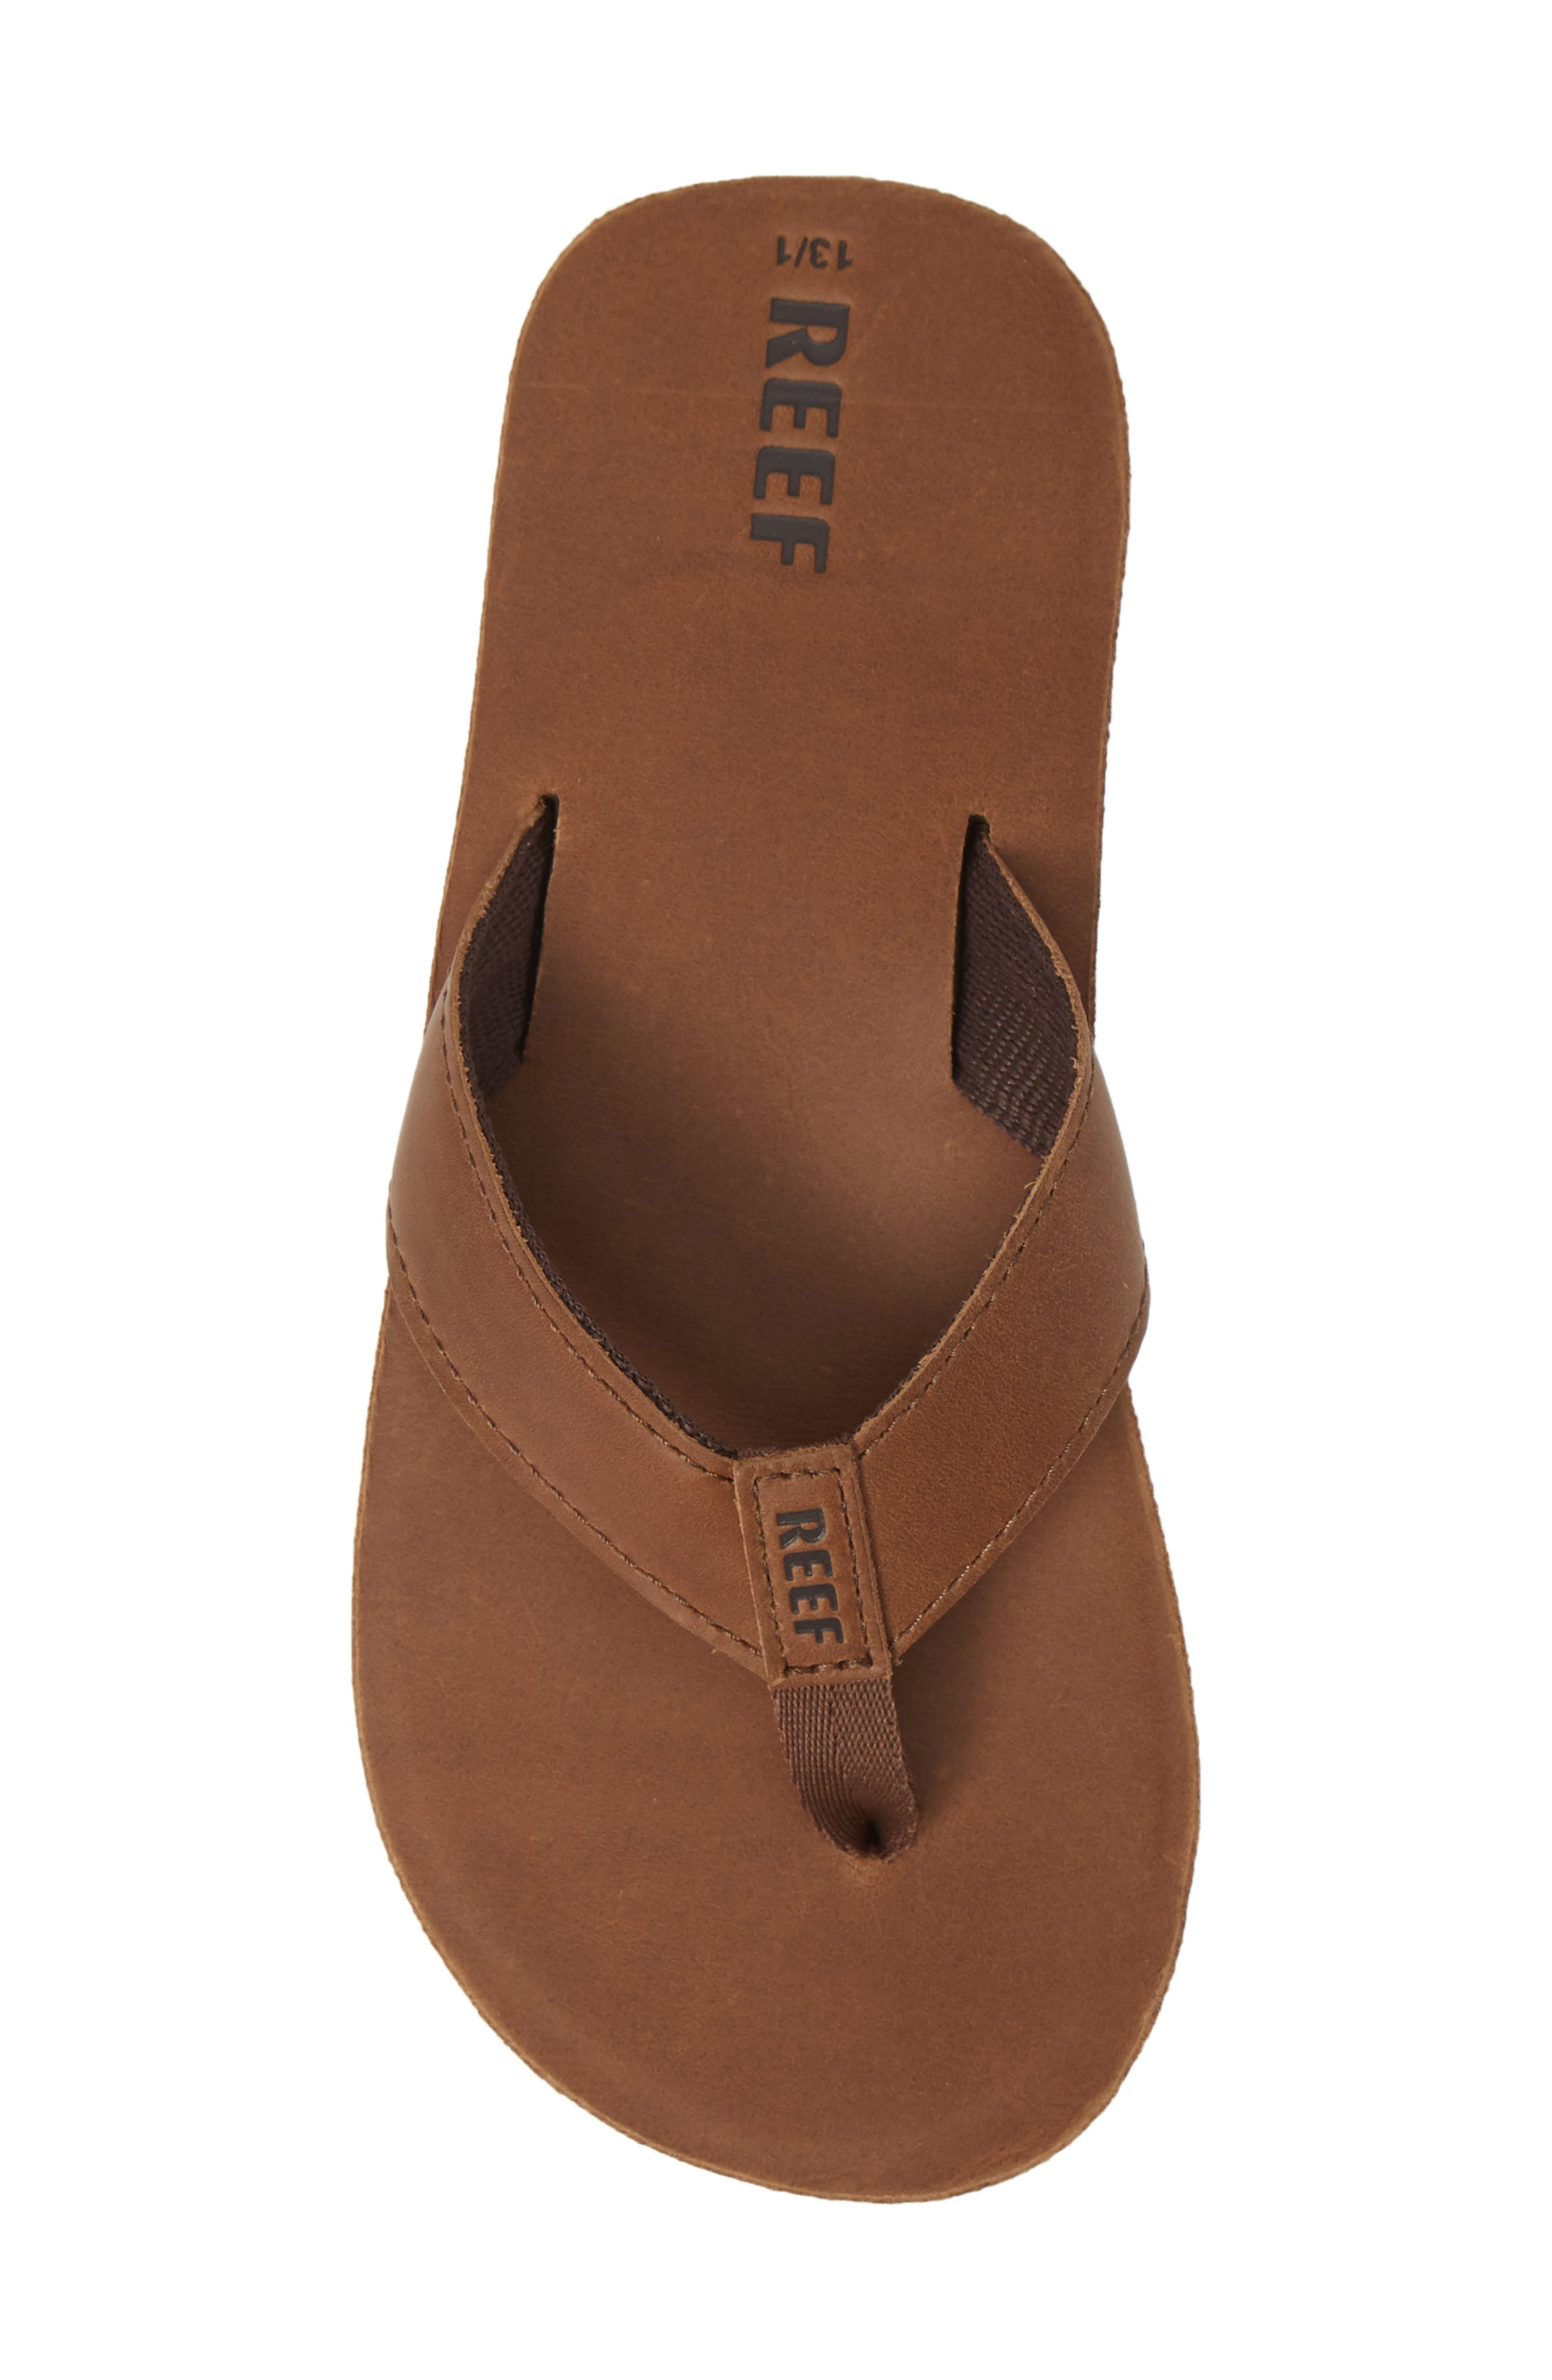 REEF, Smoothy Flip Flop, Alternate thumbnail 5, color, BRONZE BROWN